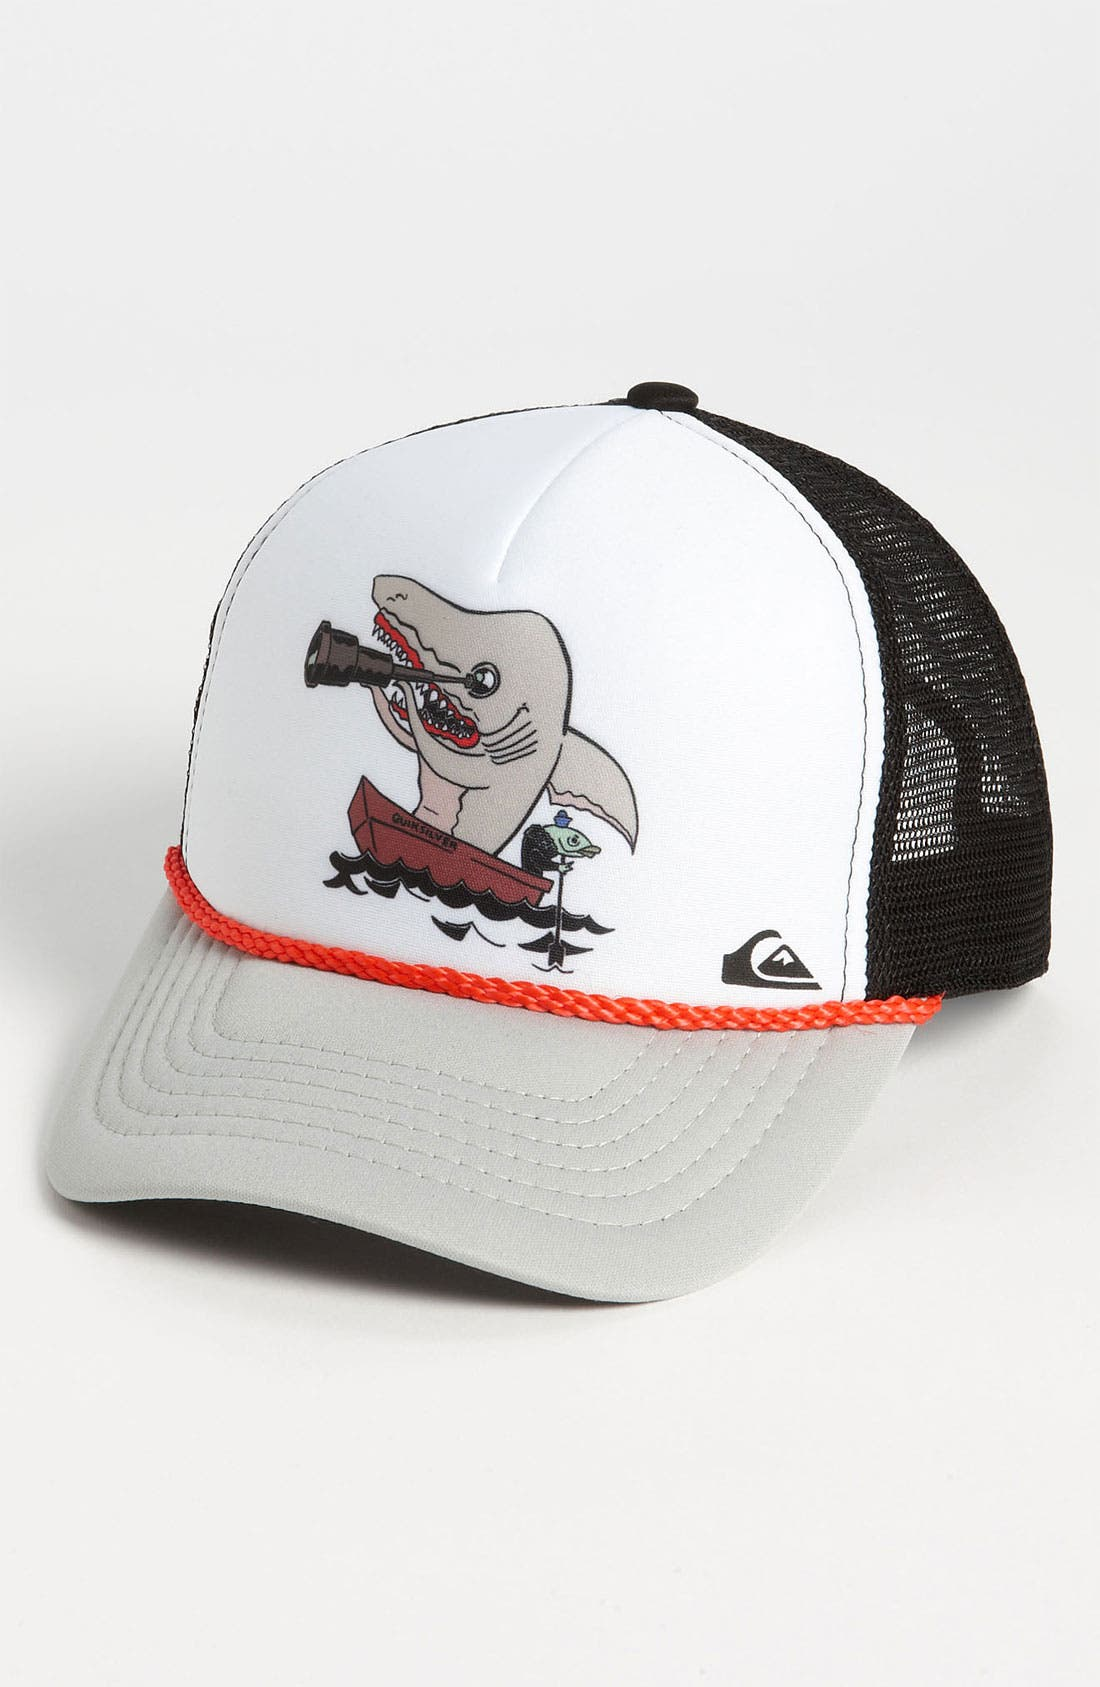 Alternate Image 1 Selected - Quiksilver 'Terg Ferg' Trucker Hat (Boys)